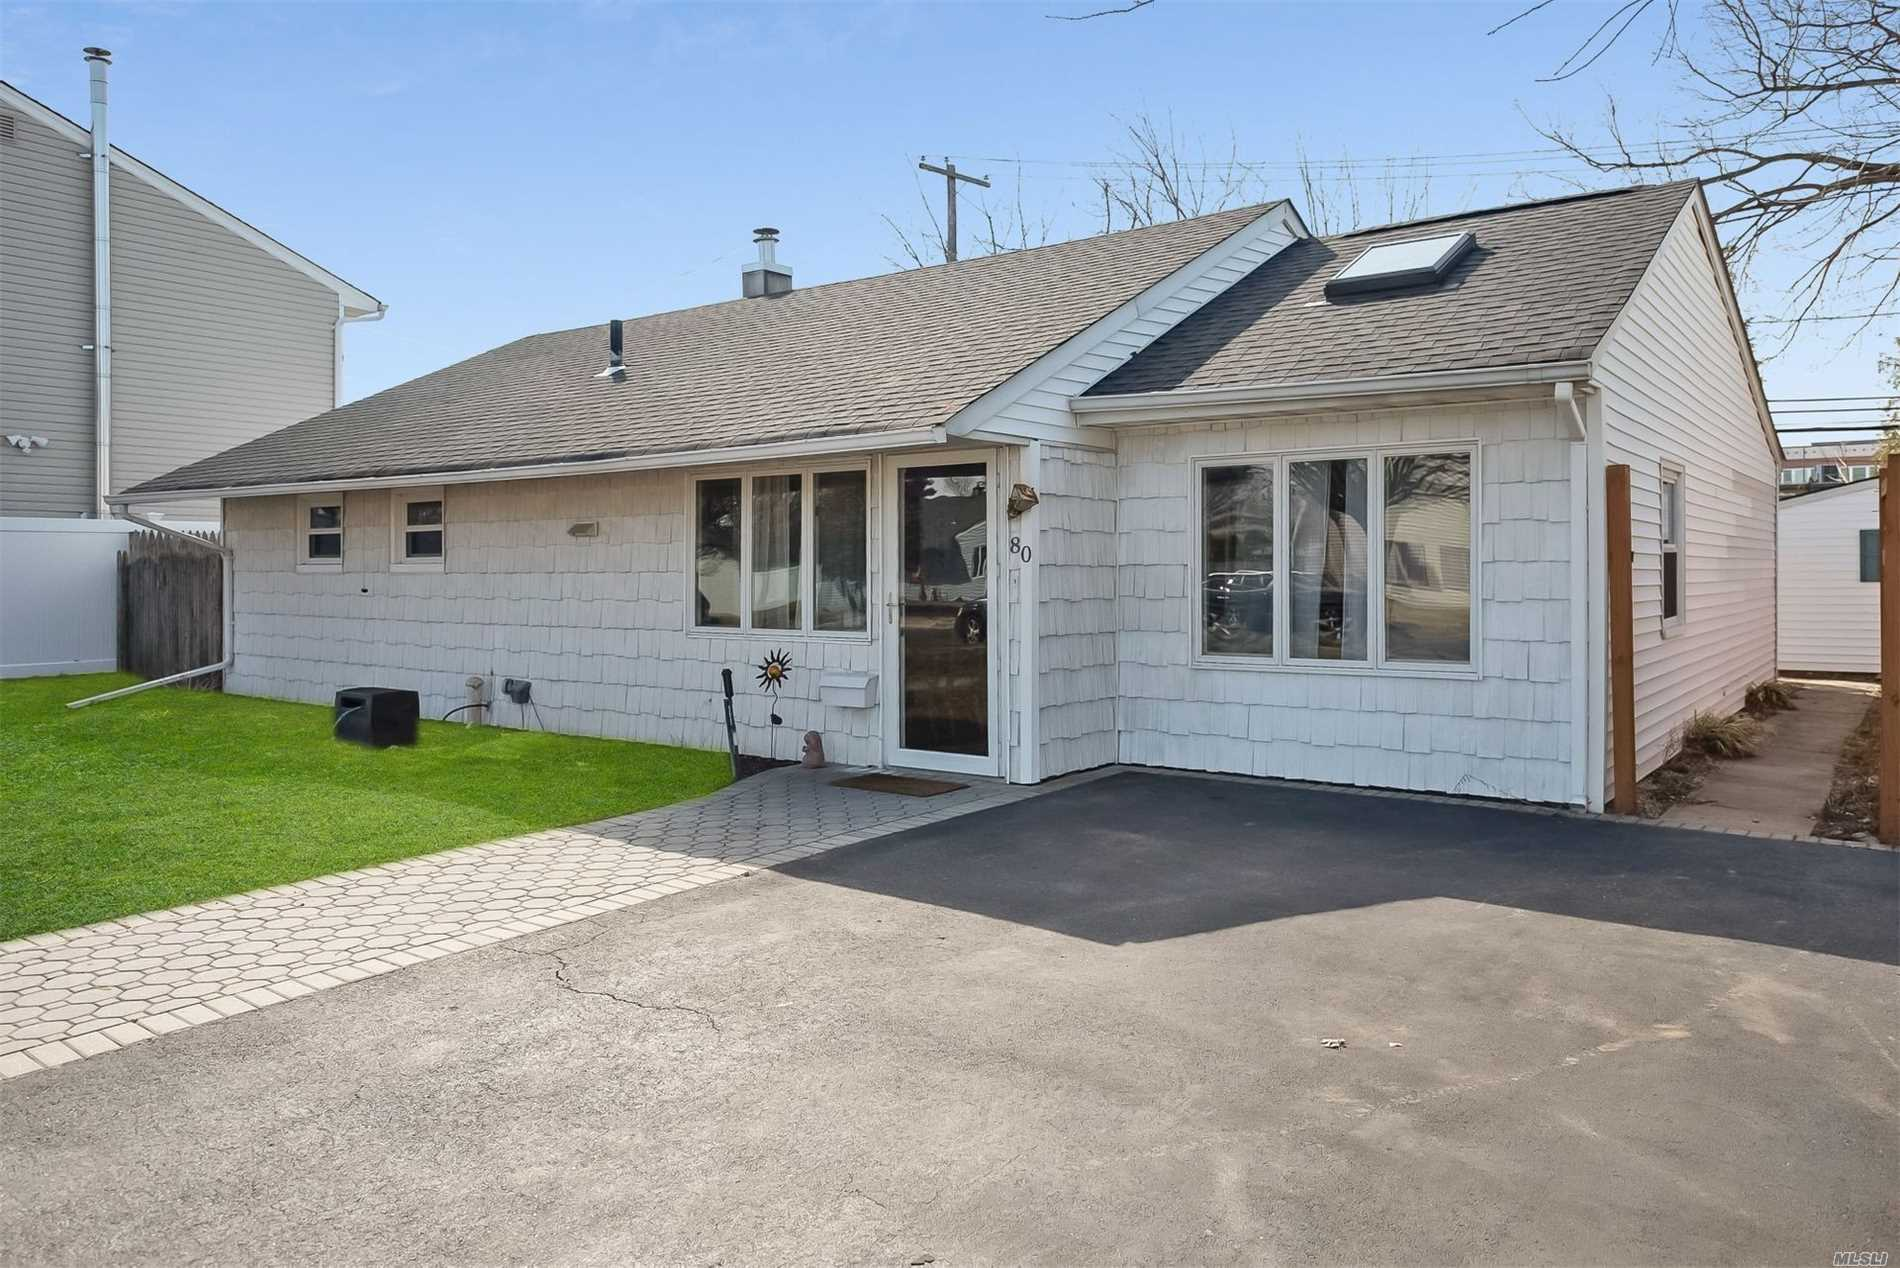 Lovely Ranch in Plainedge School District. Master Bedroom has Full Bathroom, 2 other Bedrooms, Large Living Room Dining Area, another Full Bathroom. Close to Shopping, Parkways, Golfing (The Black Course at Bethpage State Golf Course).